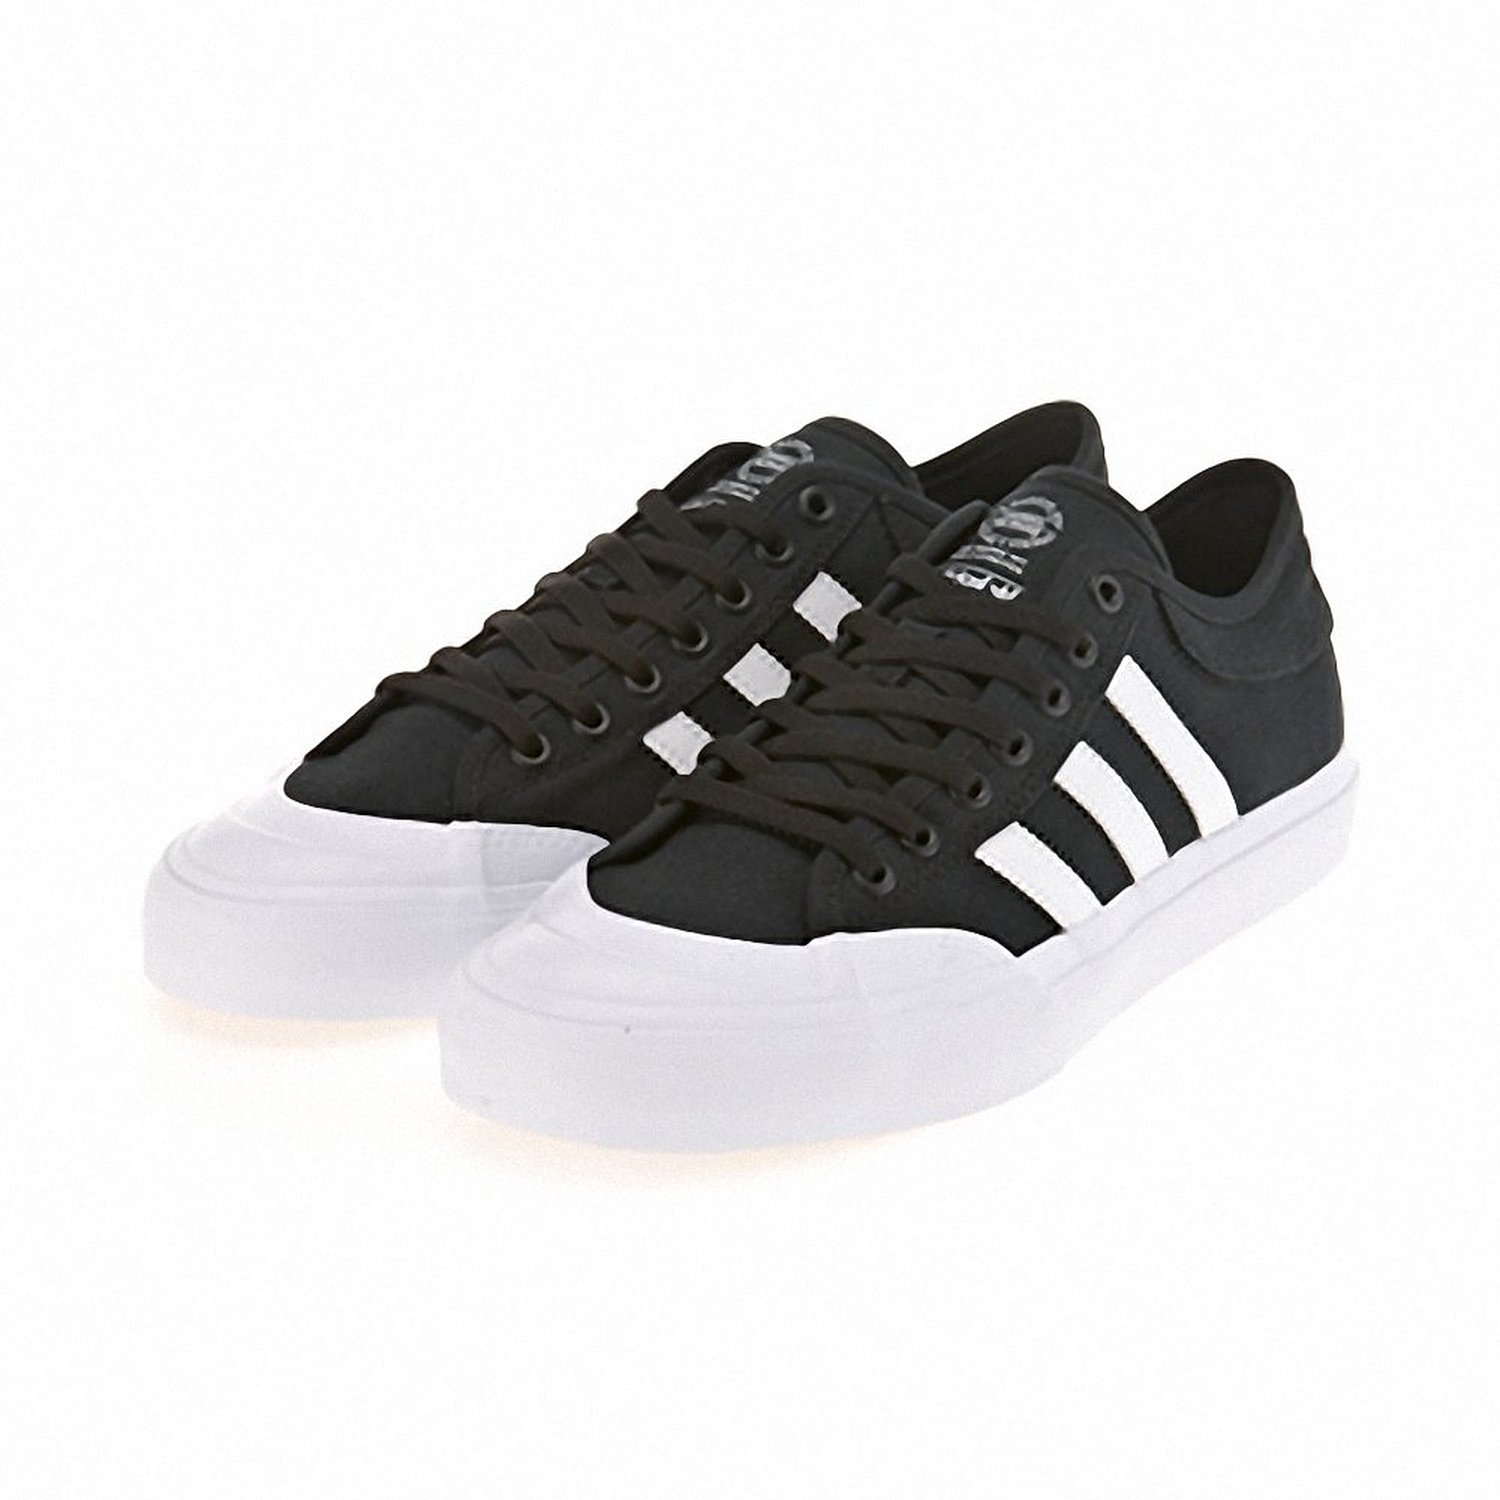 Adidas Originals Shoes Matchcourt Black White FTW Black Skateboard Sneakers